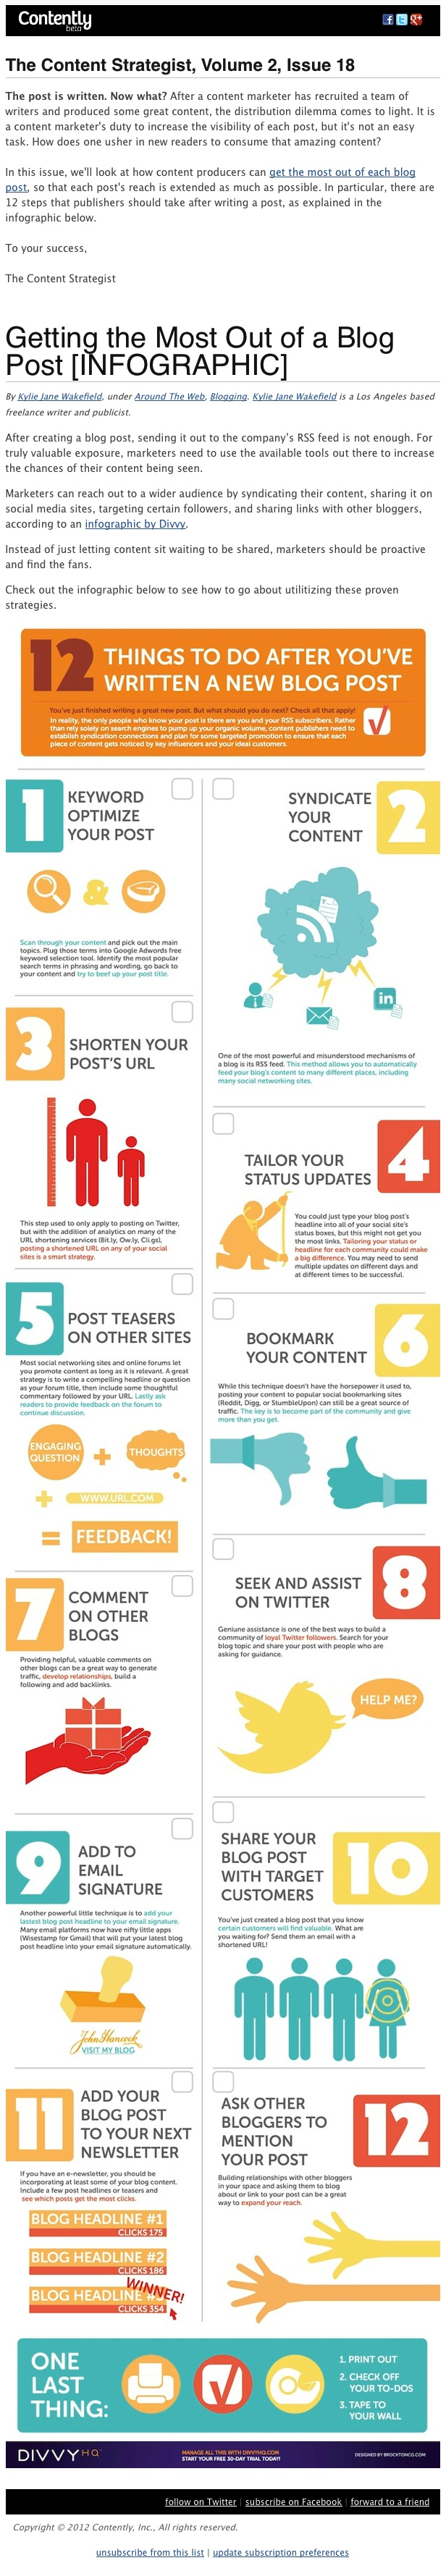 A good use of an infographic, even though the advice is a bit obvious.